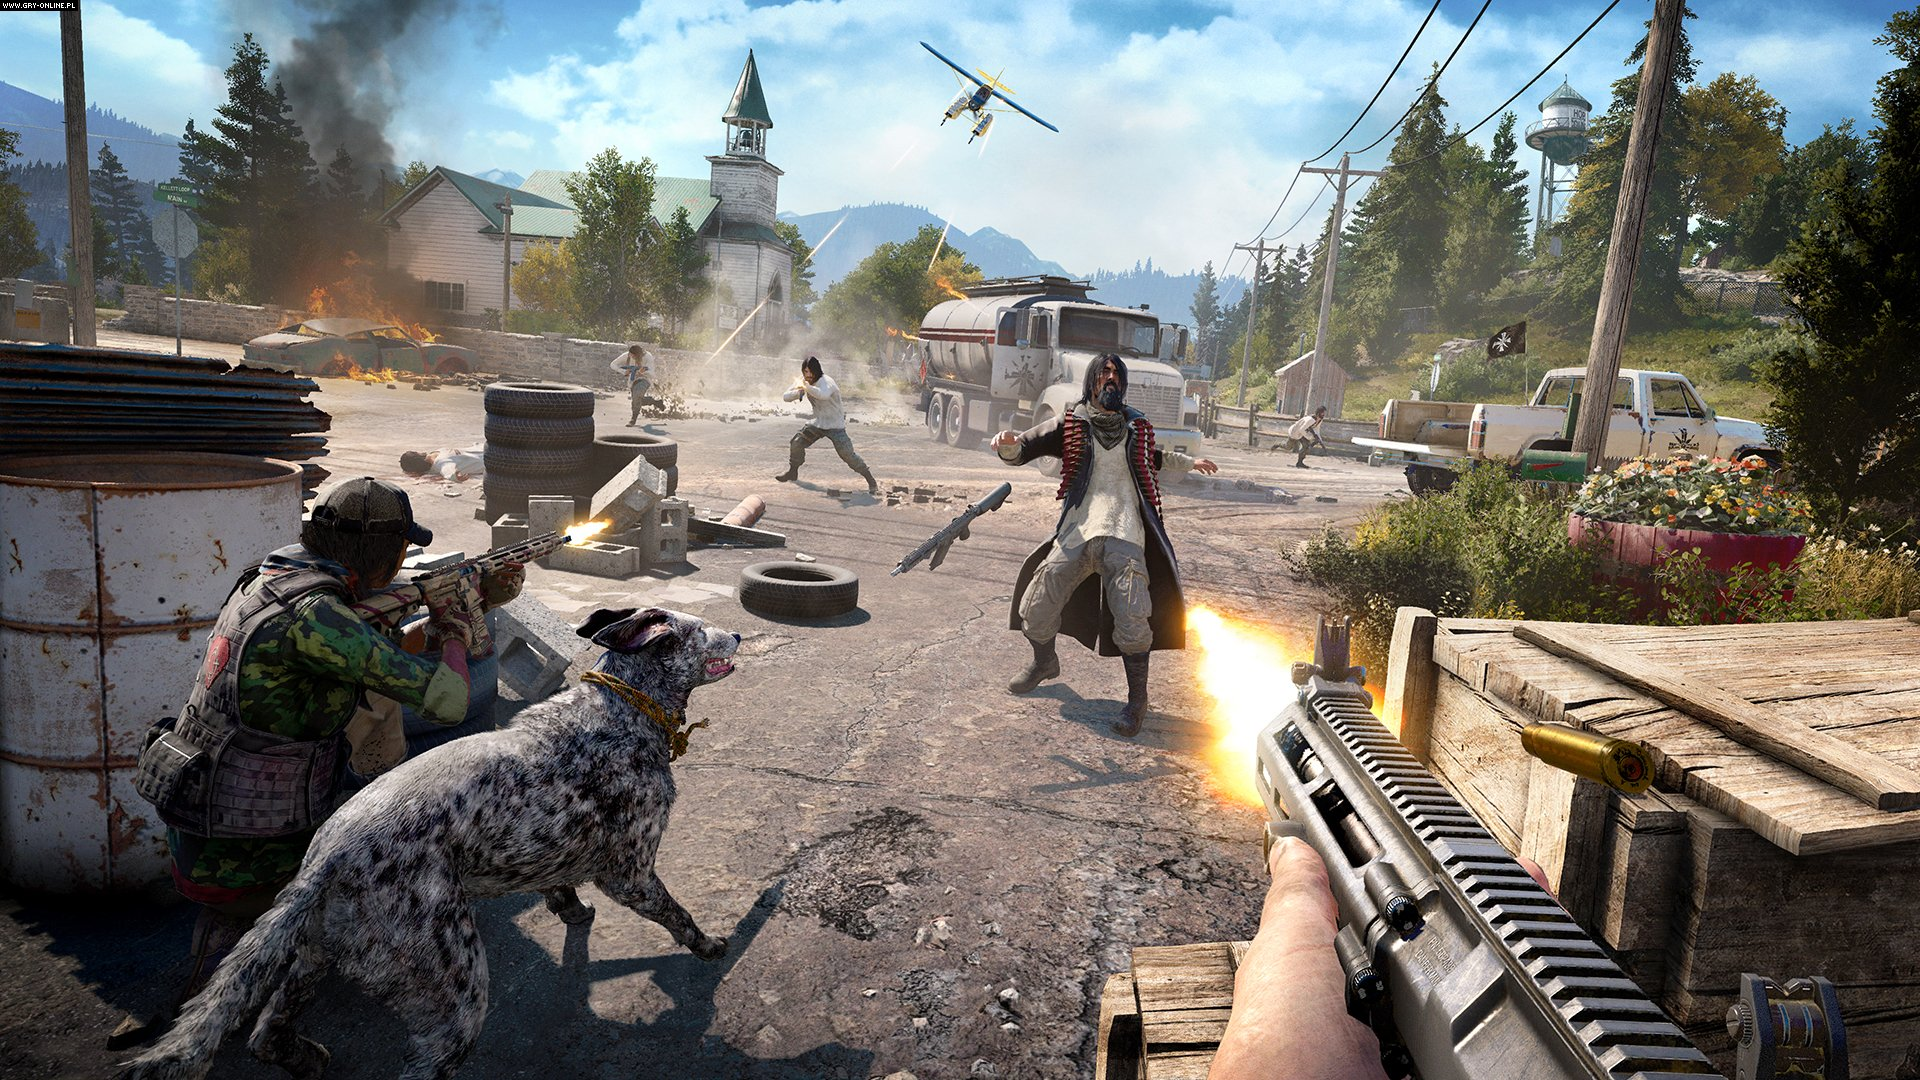 Far Cry 5 PC, PS4, XONE Games Image 19/20, Ubisoft